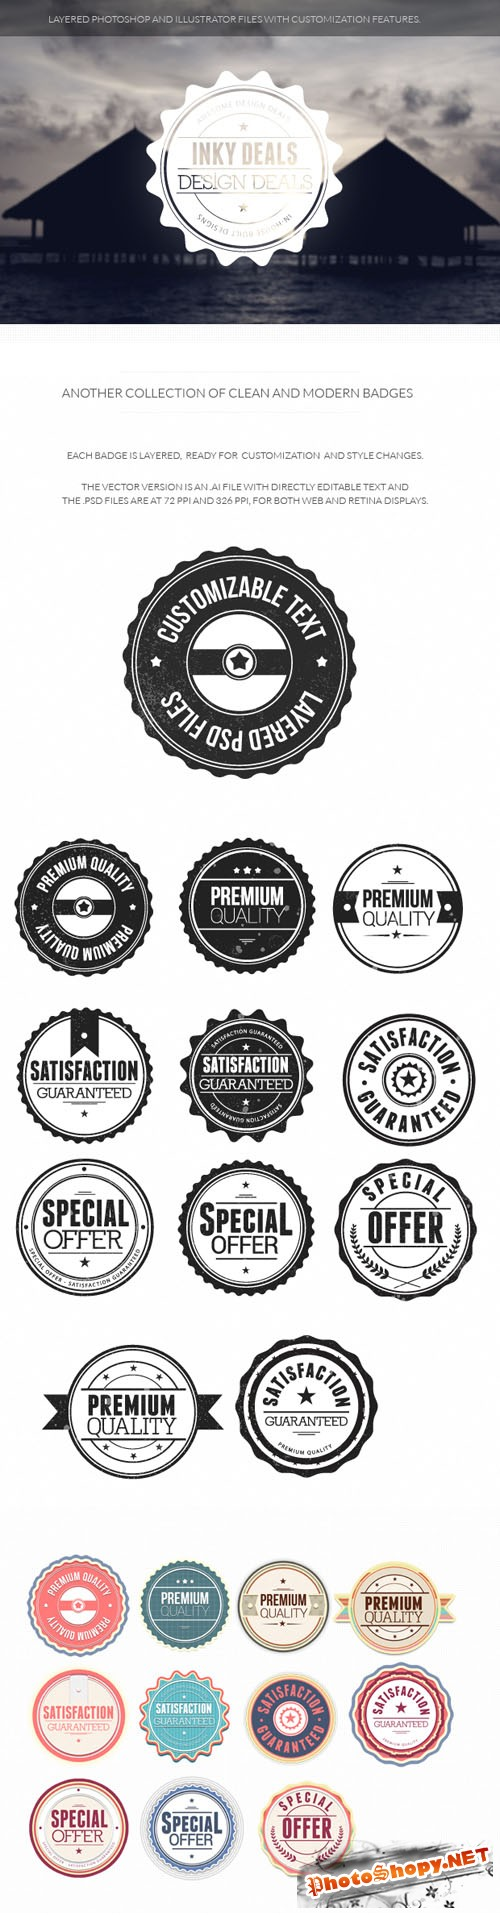 Clean and Modern Badges Vector Elements Set 2